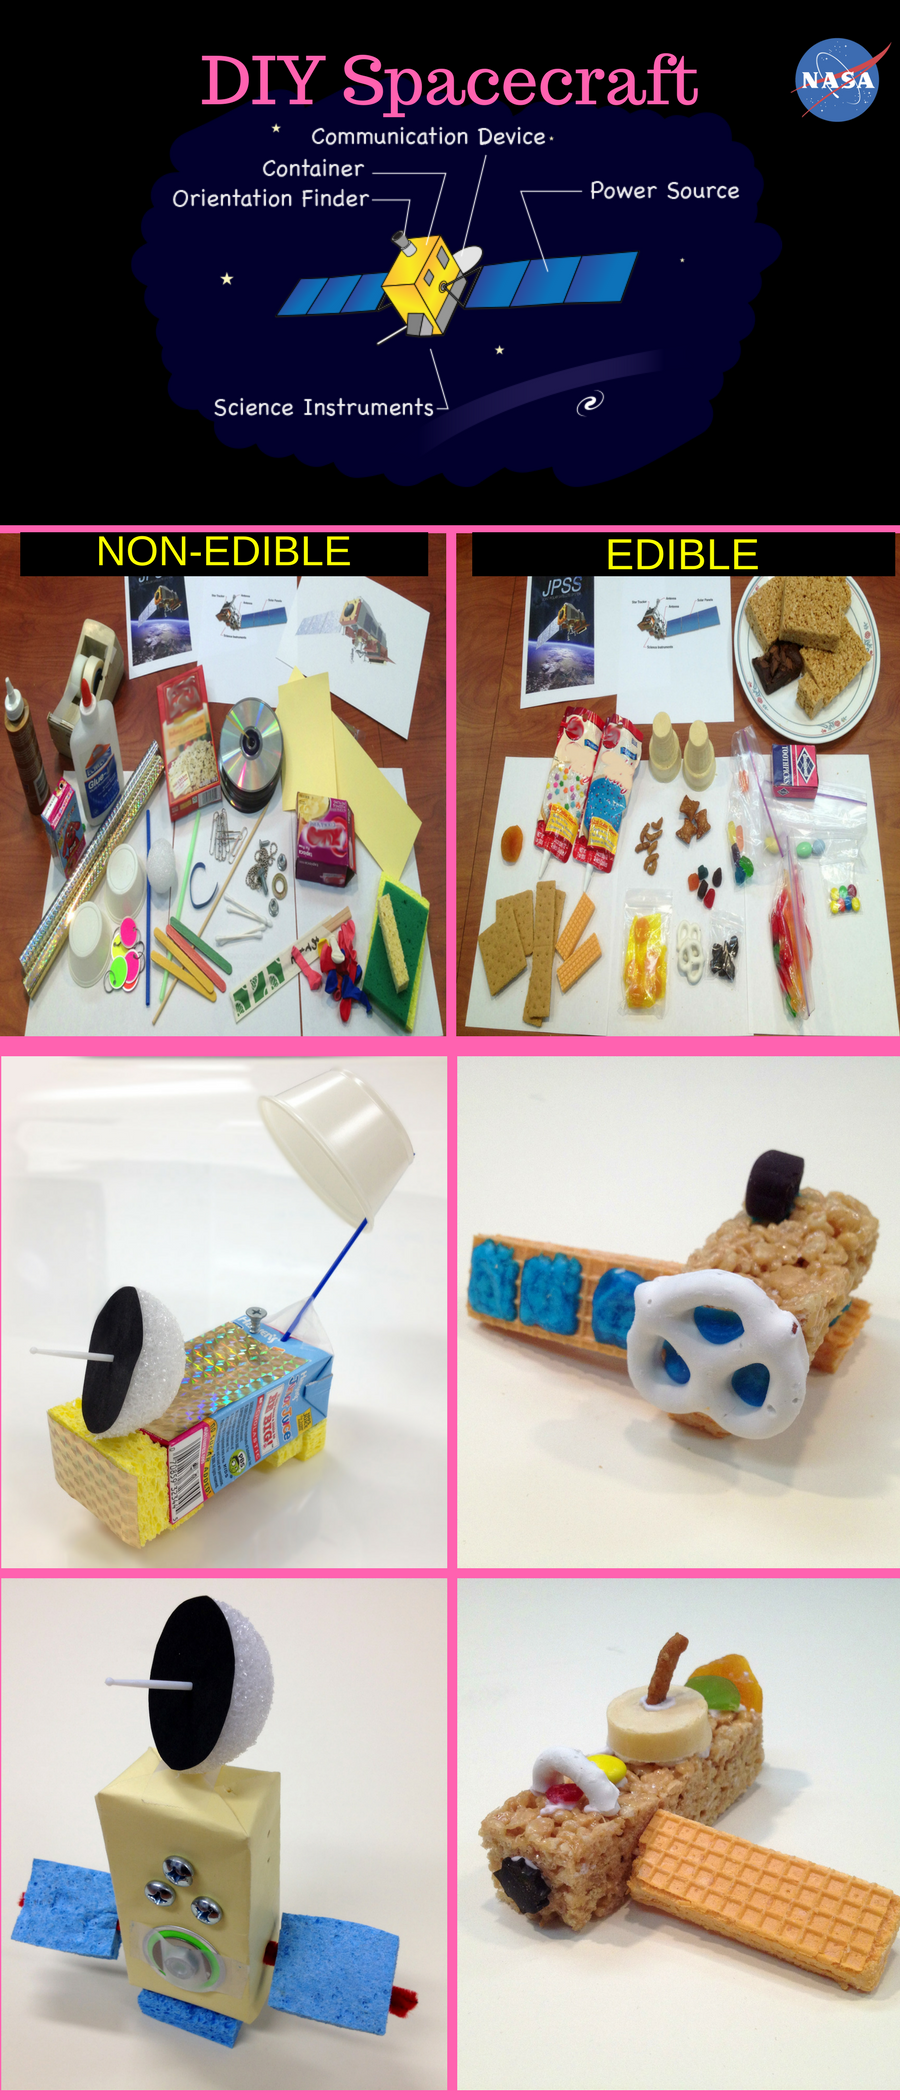 Build Your Own Spacecraft Grades 3 8 Use Your Engineering Skills To Desi Space Activities For Kids Elementary Science Activities Elementary Stem Activities